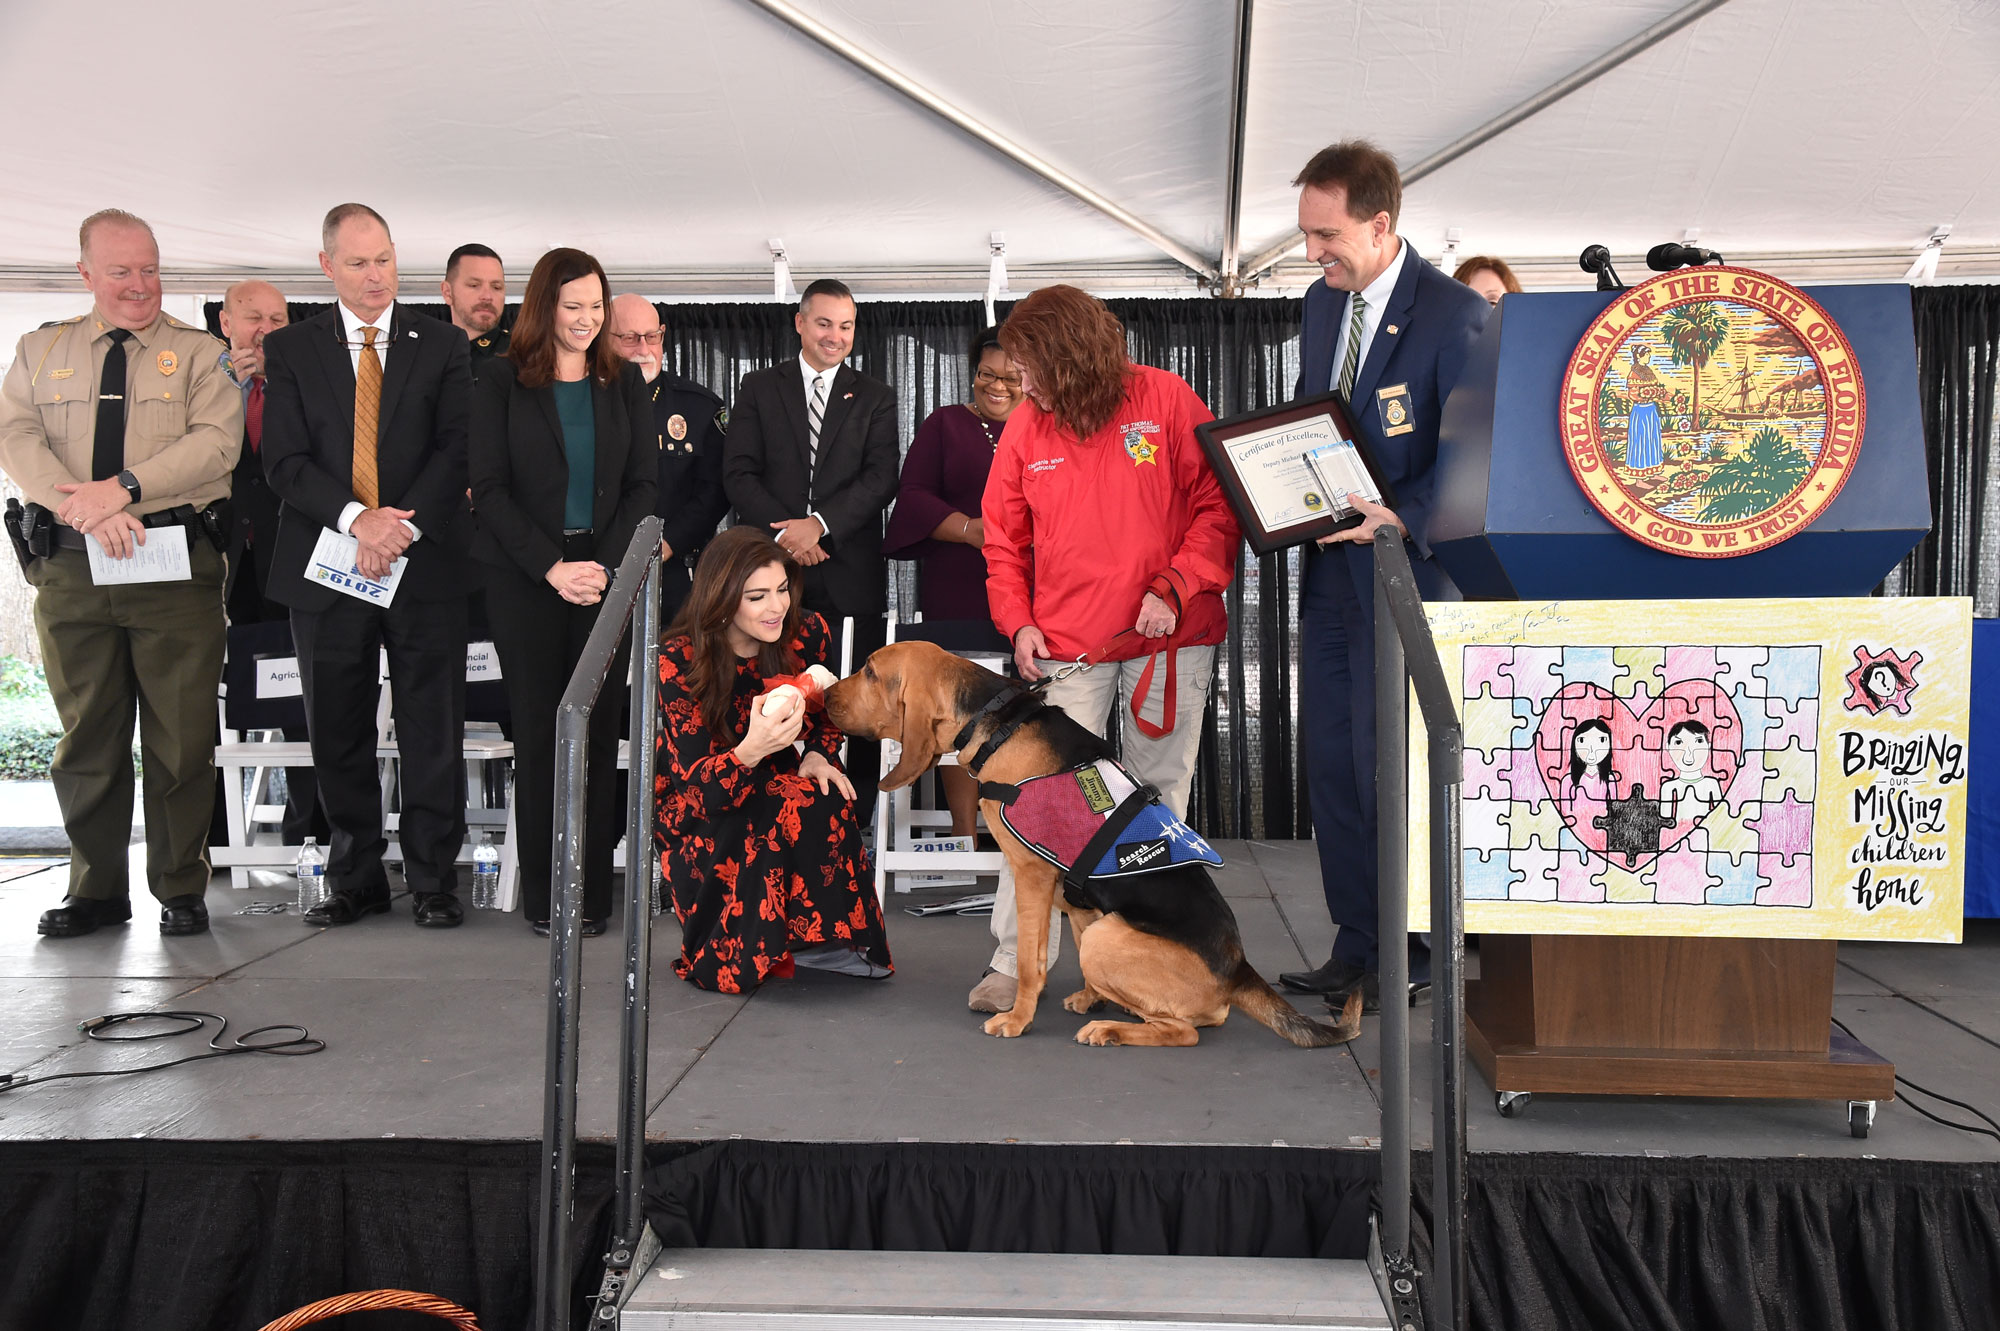 (From front, left to right) Colonel James Wiggins – Dept. of Agriculture and Consumer Services, Deputy Chief Jay Ethridge – Dept. of Financial Services, Ashley Moody – Florida Attorney General, Casey Desantis – First Lady of Florida, Commissioner Richard Swearingen – Florida Department of Law Enforcement